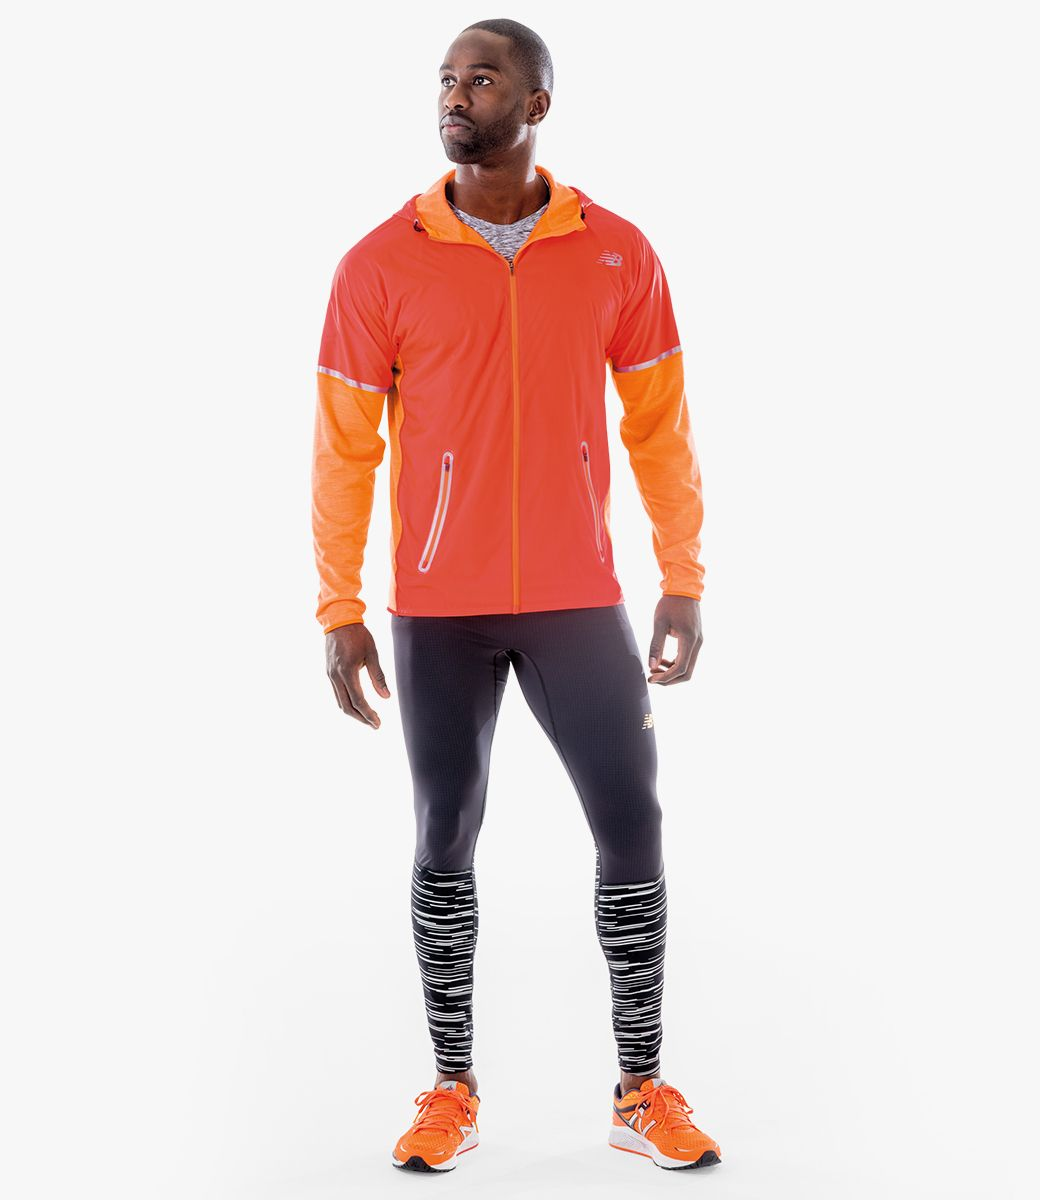 New Balance Mens Vazee Prism and Key Look,